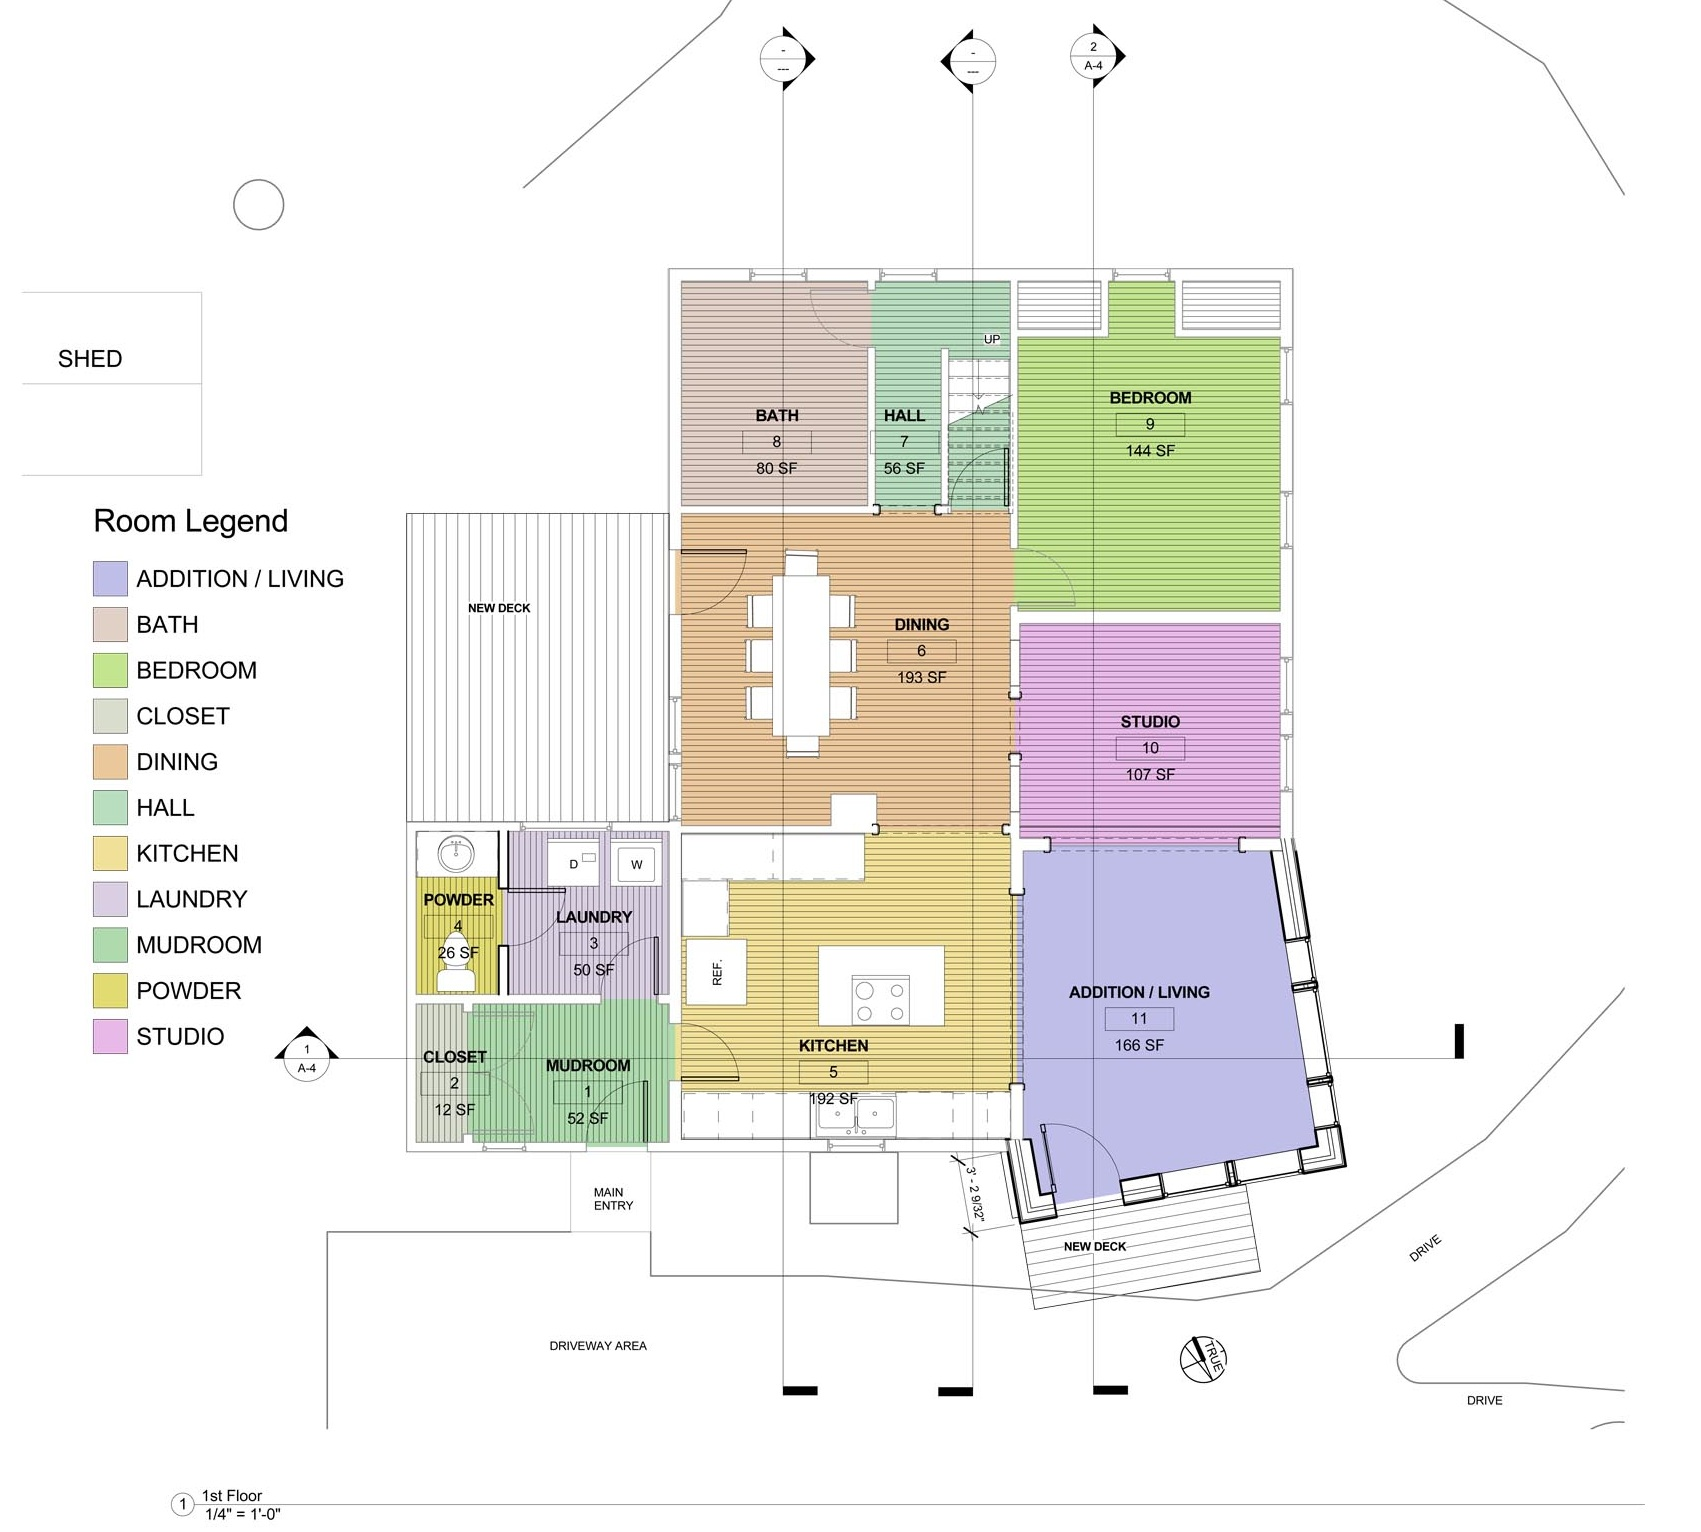 Ground floor plan showing proposed changes